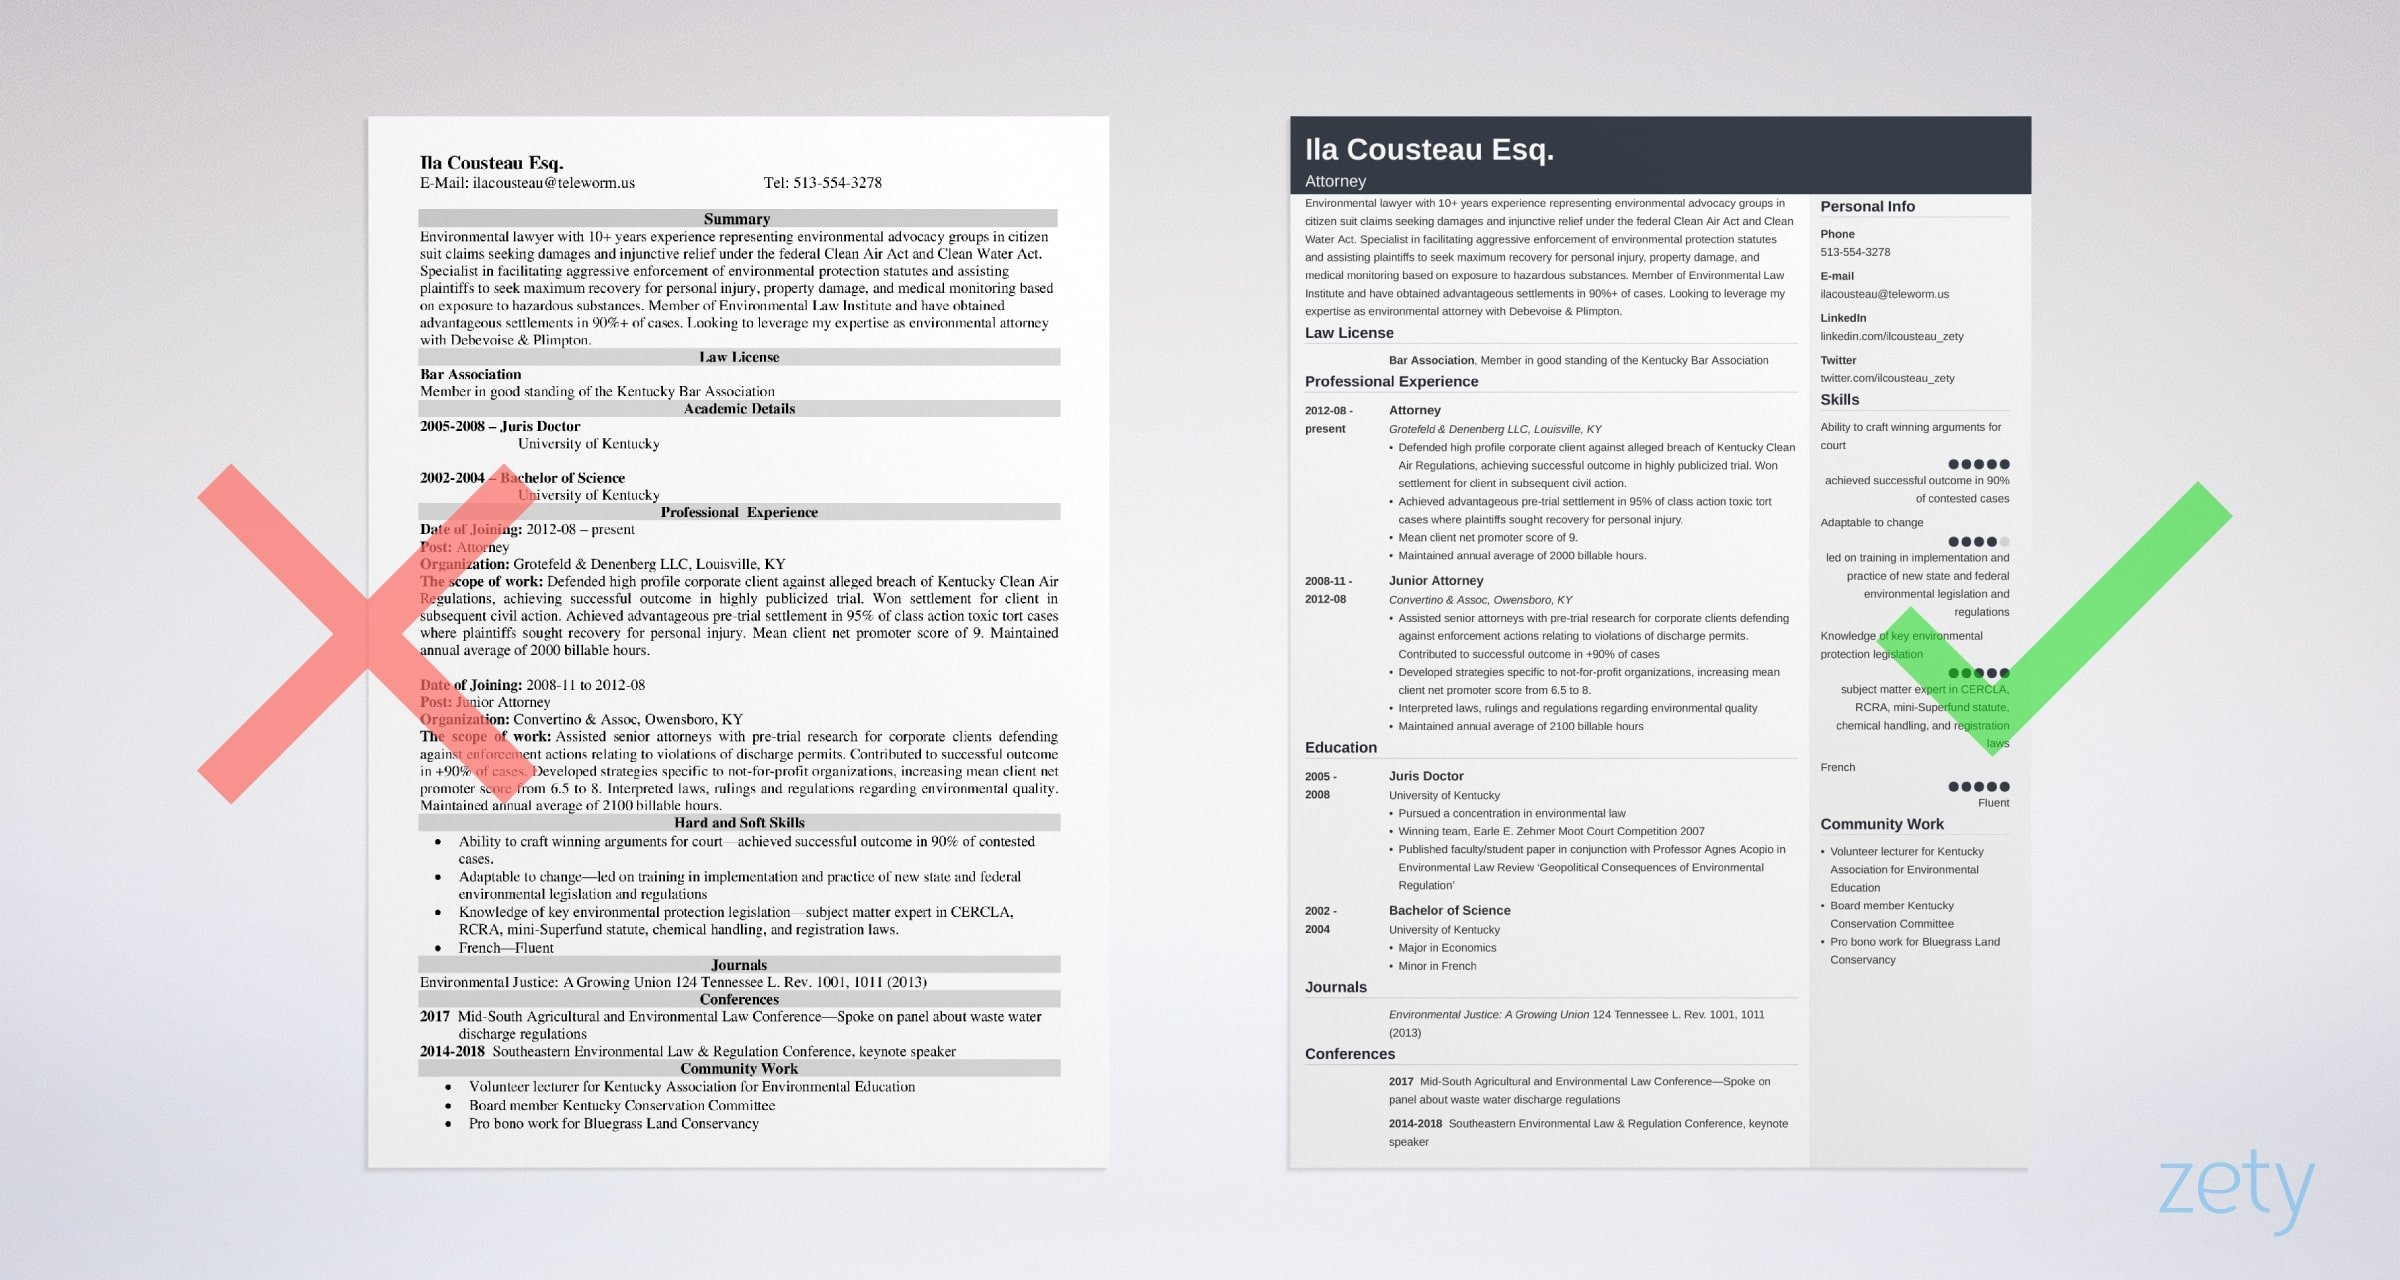 law legal resume template examples guide tips best templates example cissp endorsement Resume Best Legal Resume Templates